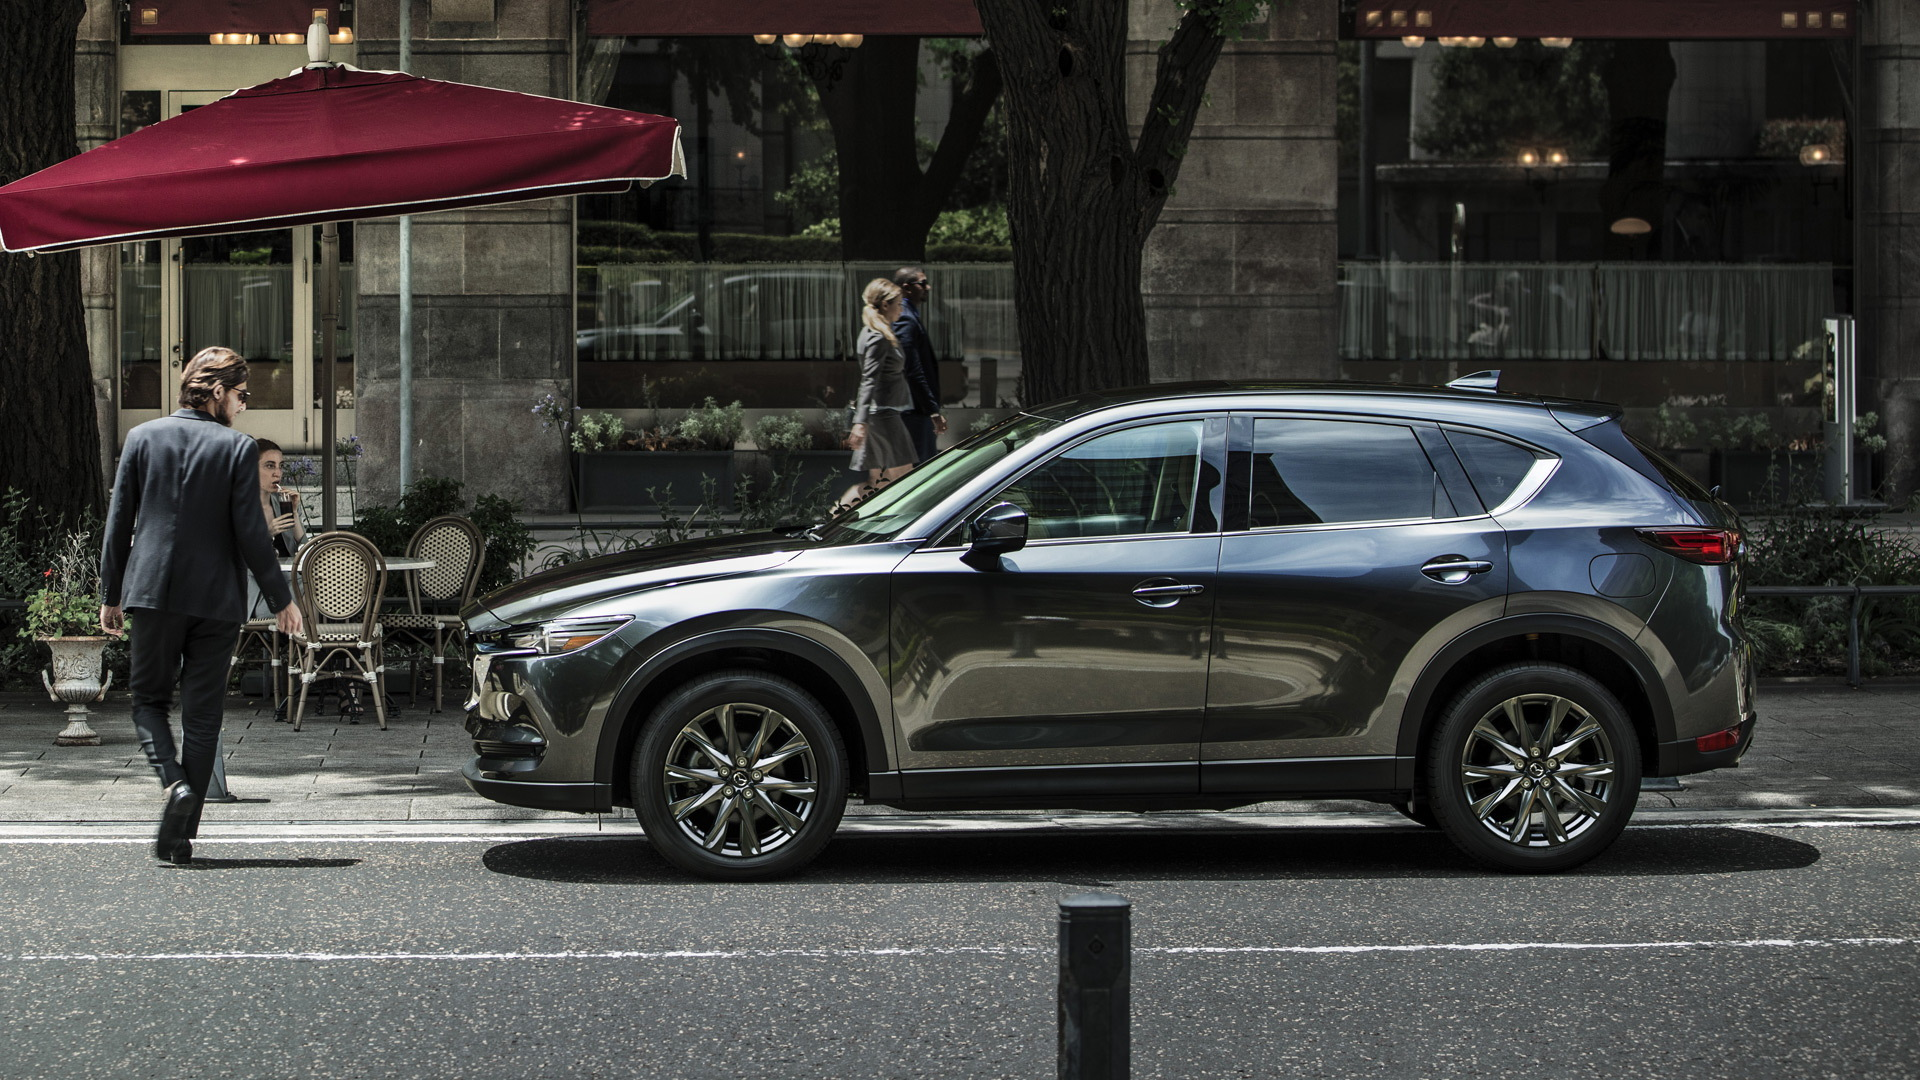 2019 Mazda Cx 5 Gets Punchy 2 5 Liter Turbo Gvc Plus Handling